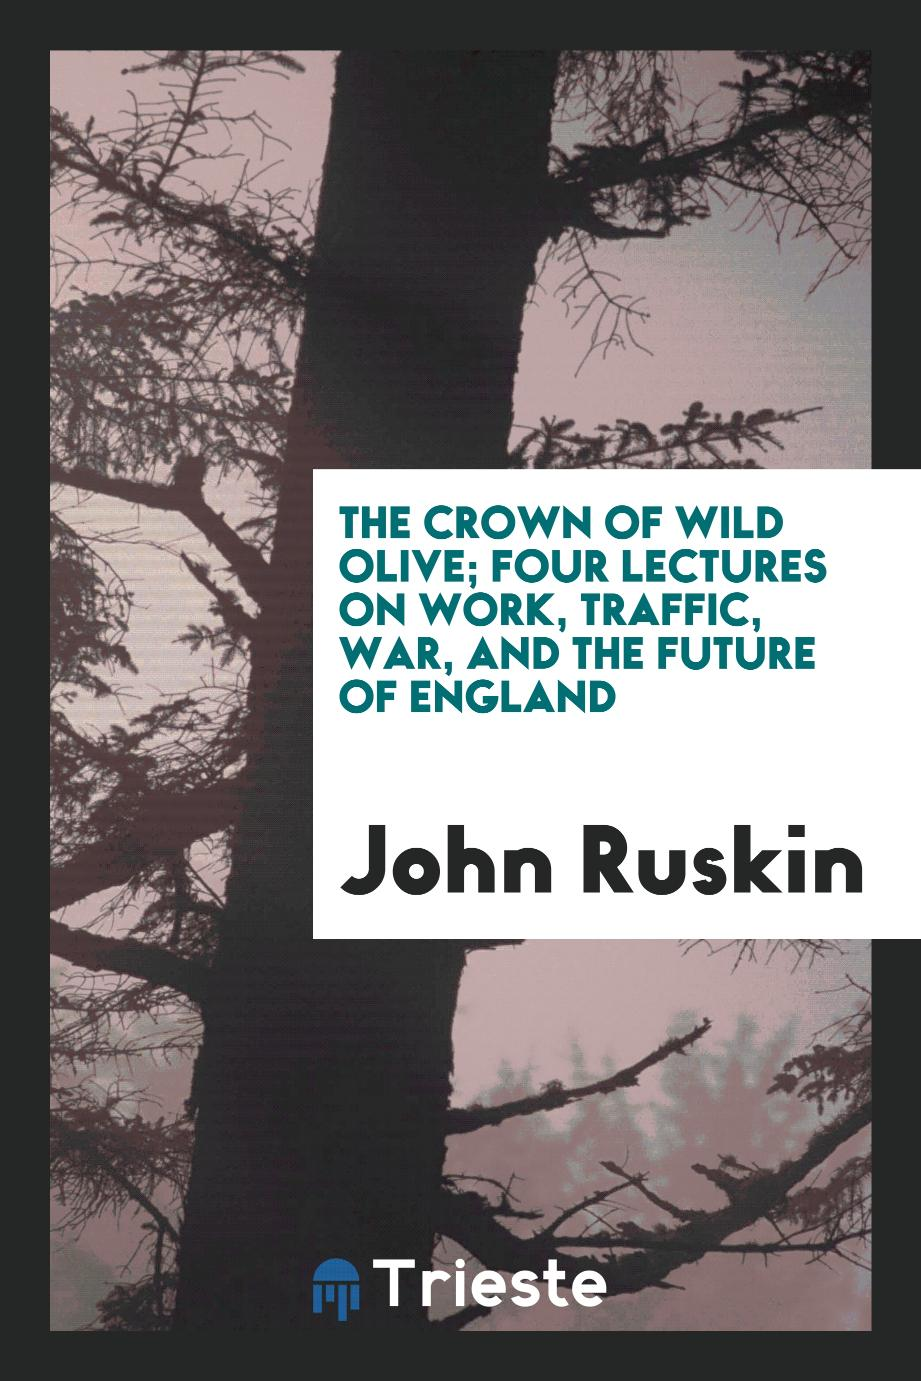 The Crown of Wild Olive; Four Lectures on Work, Traffic, War, and the Future of England